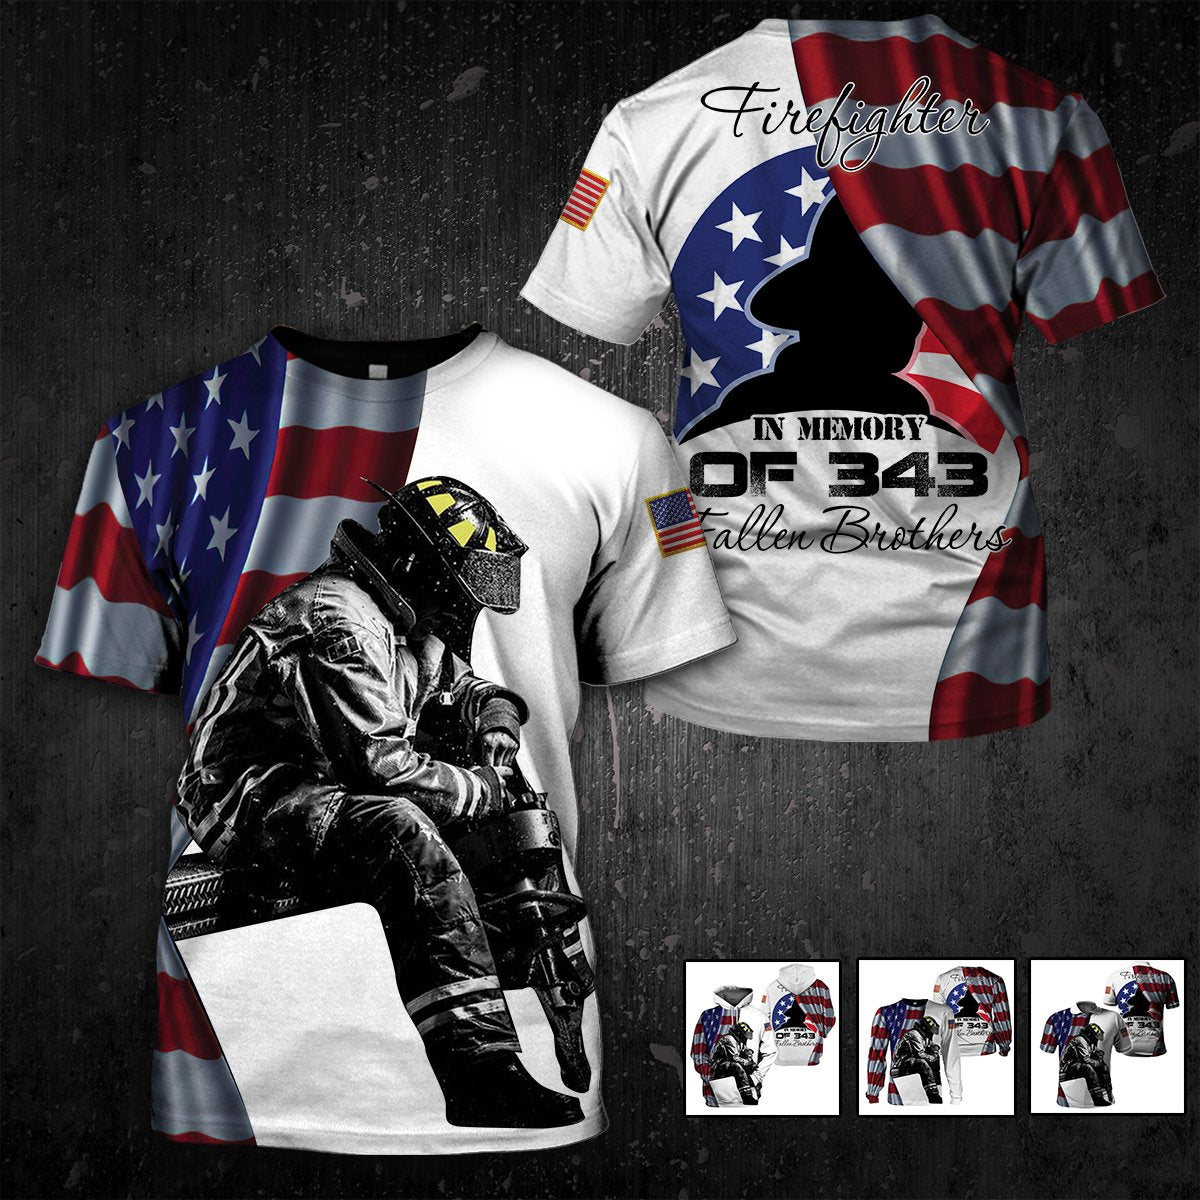 U.S Firefighter 09/11 - Never Forget - 4zOutfitters Merchandise